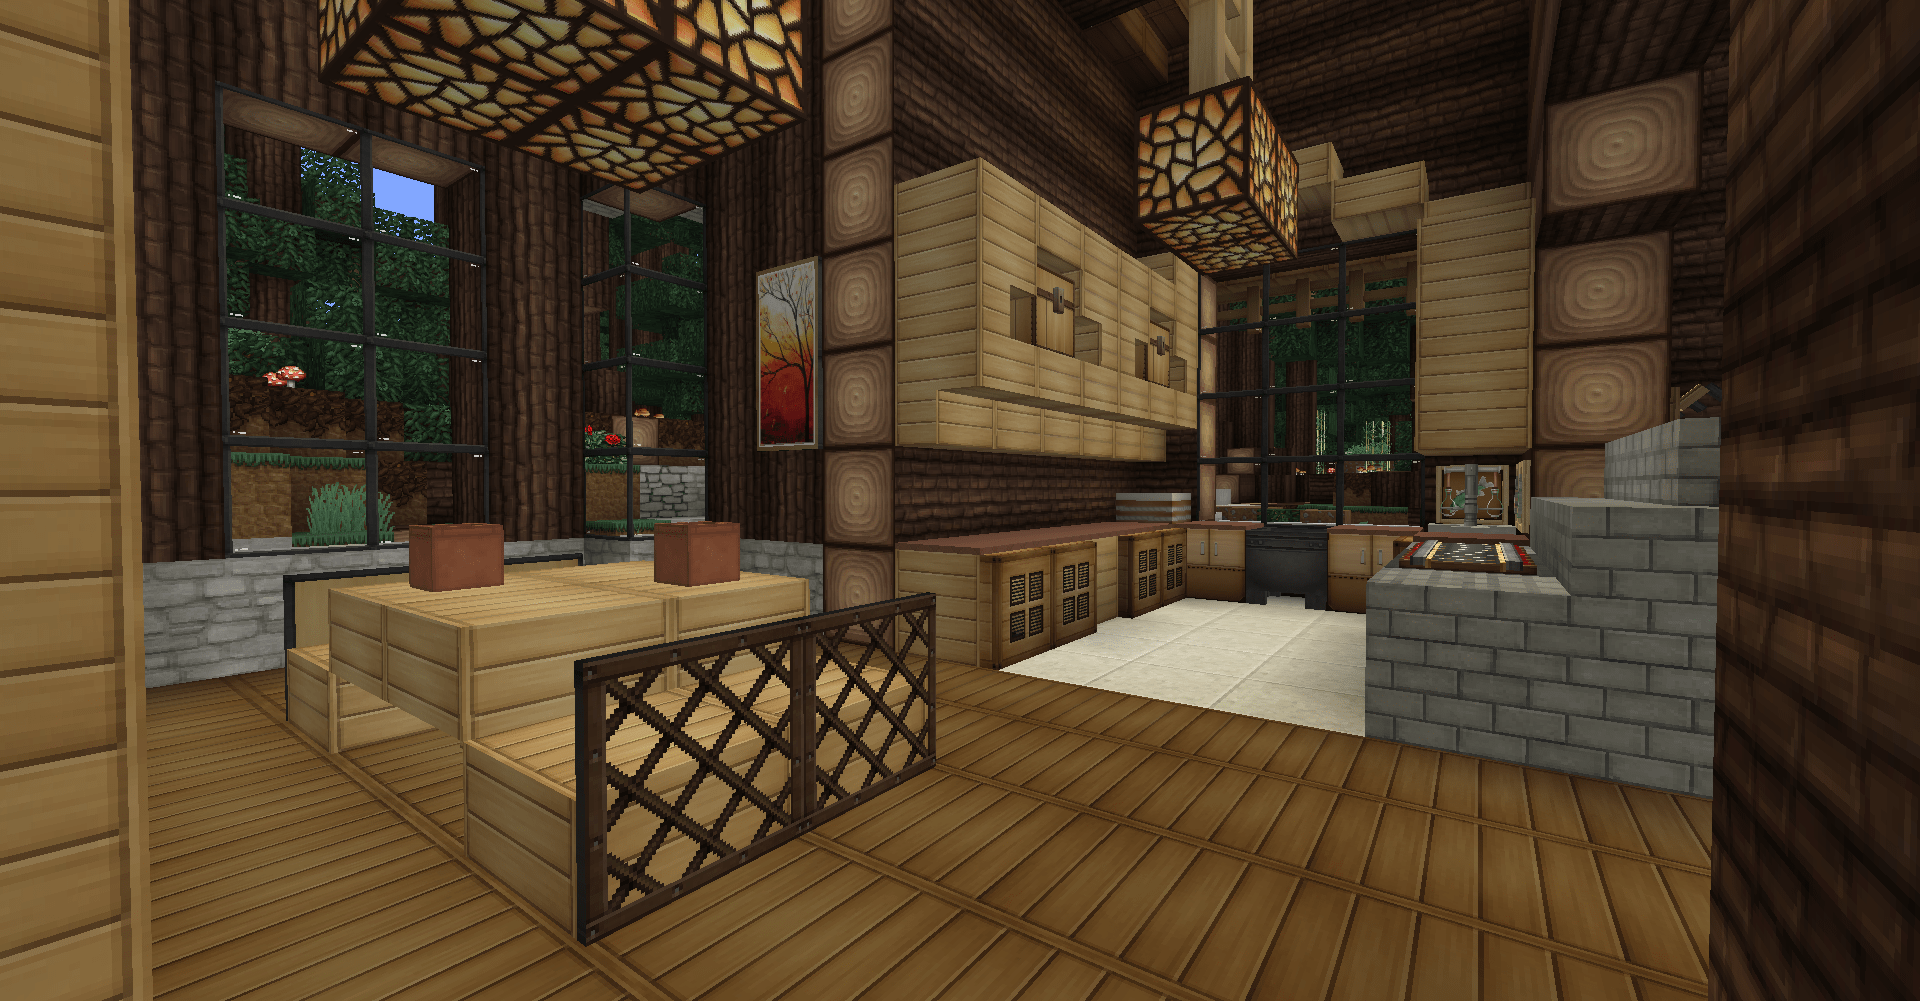 minecraft survival, log cabin, interior, dining room